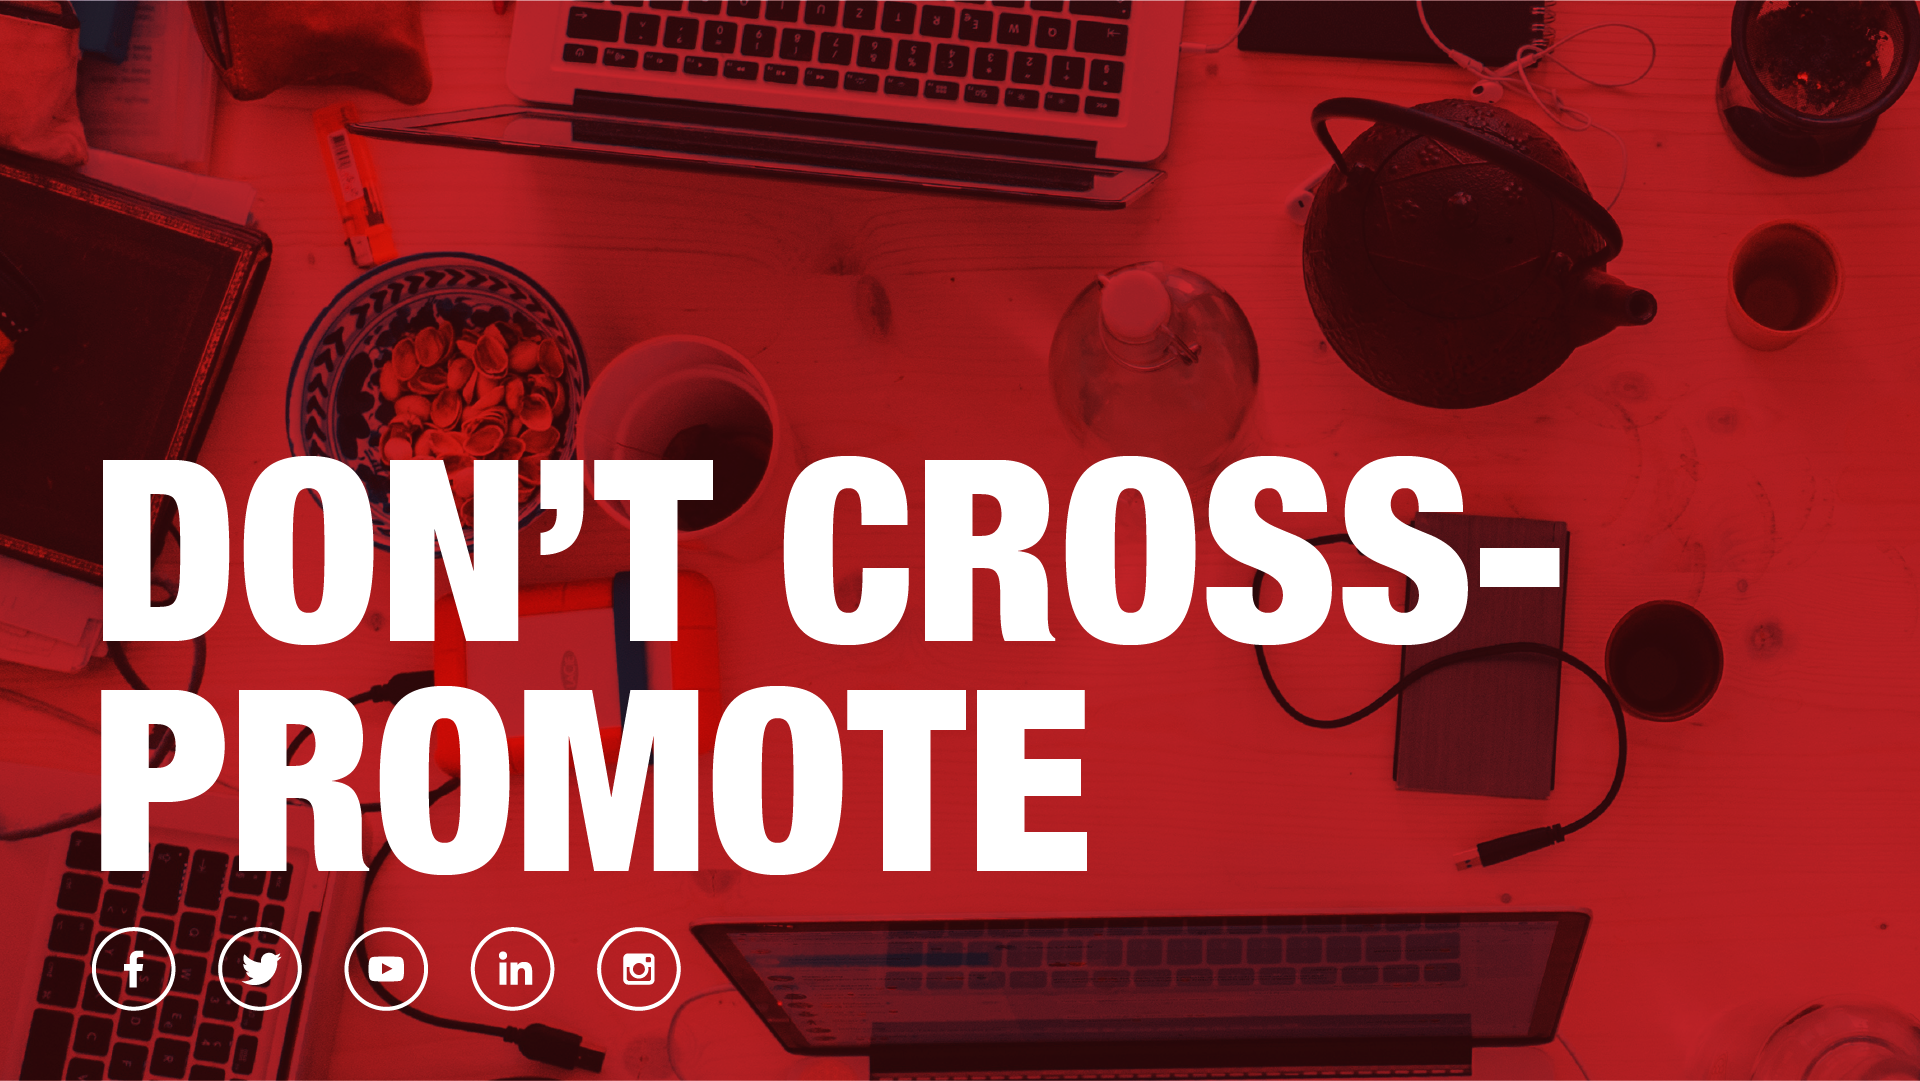 Don't cross promote content on social media